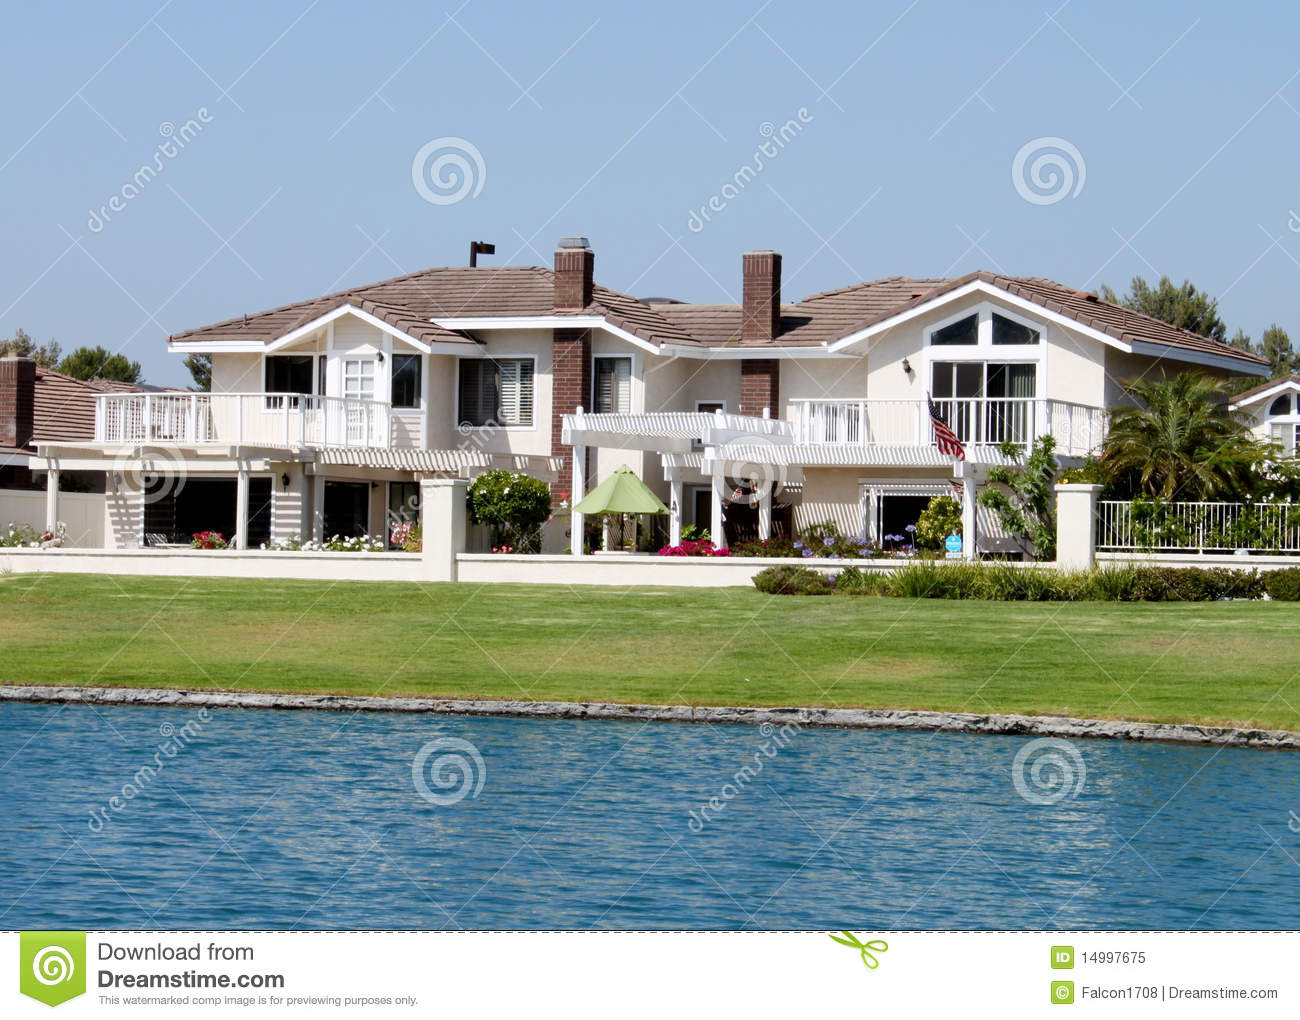 Sensational Lakeside House 2 Royalty Free Stock Photo Image 14997675 Largest Home Design Picture Inspirations Pitcheantrous